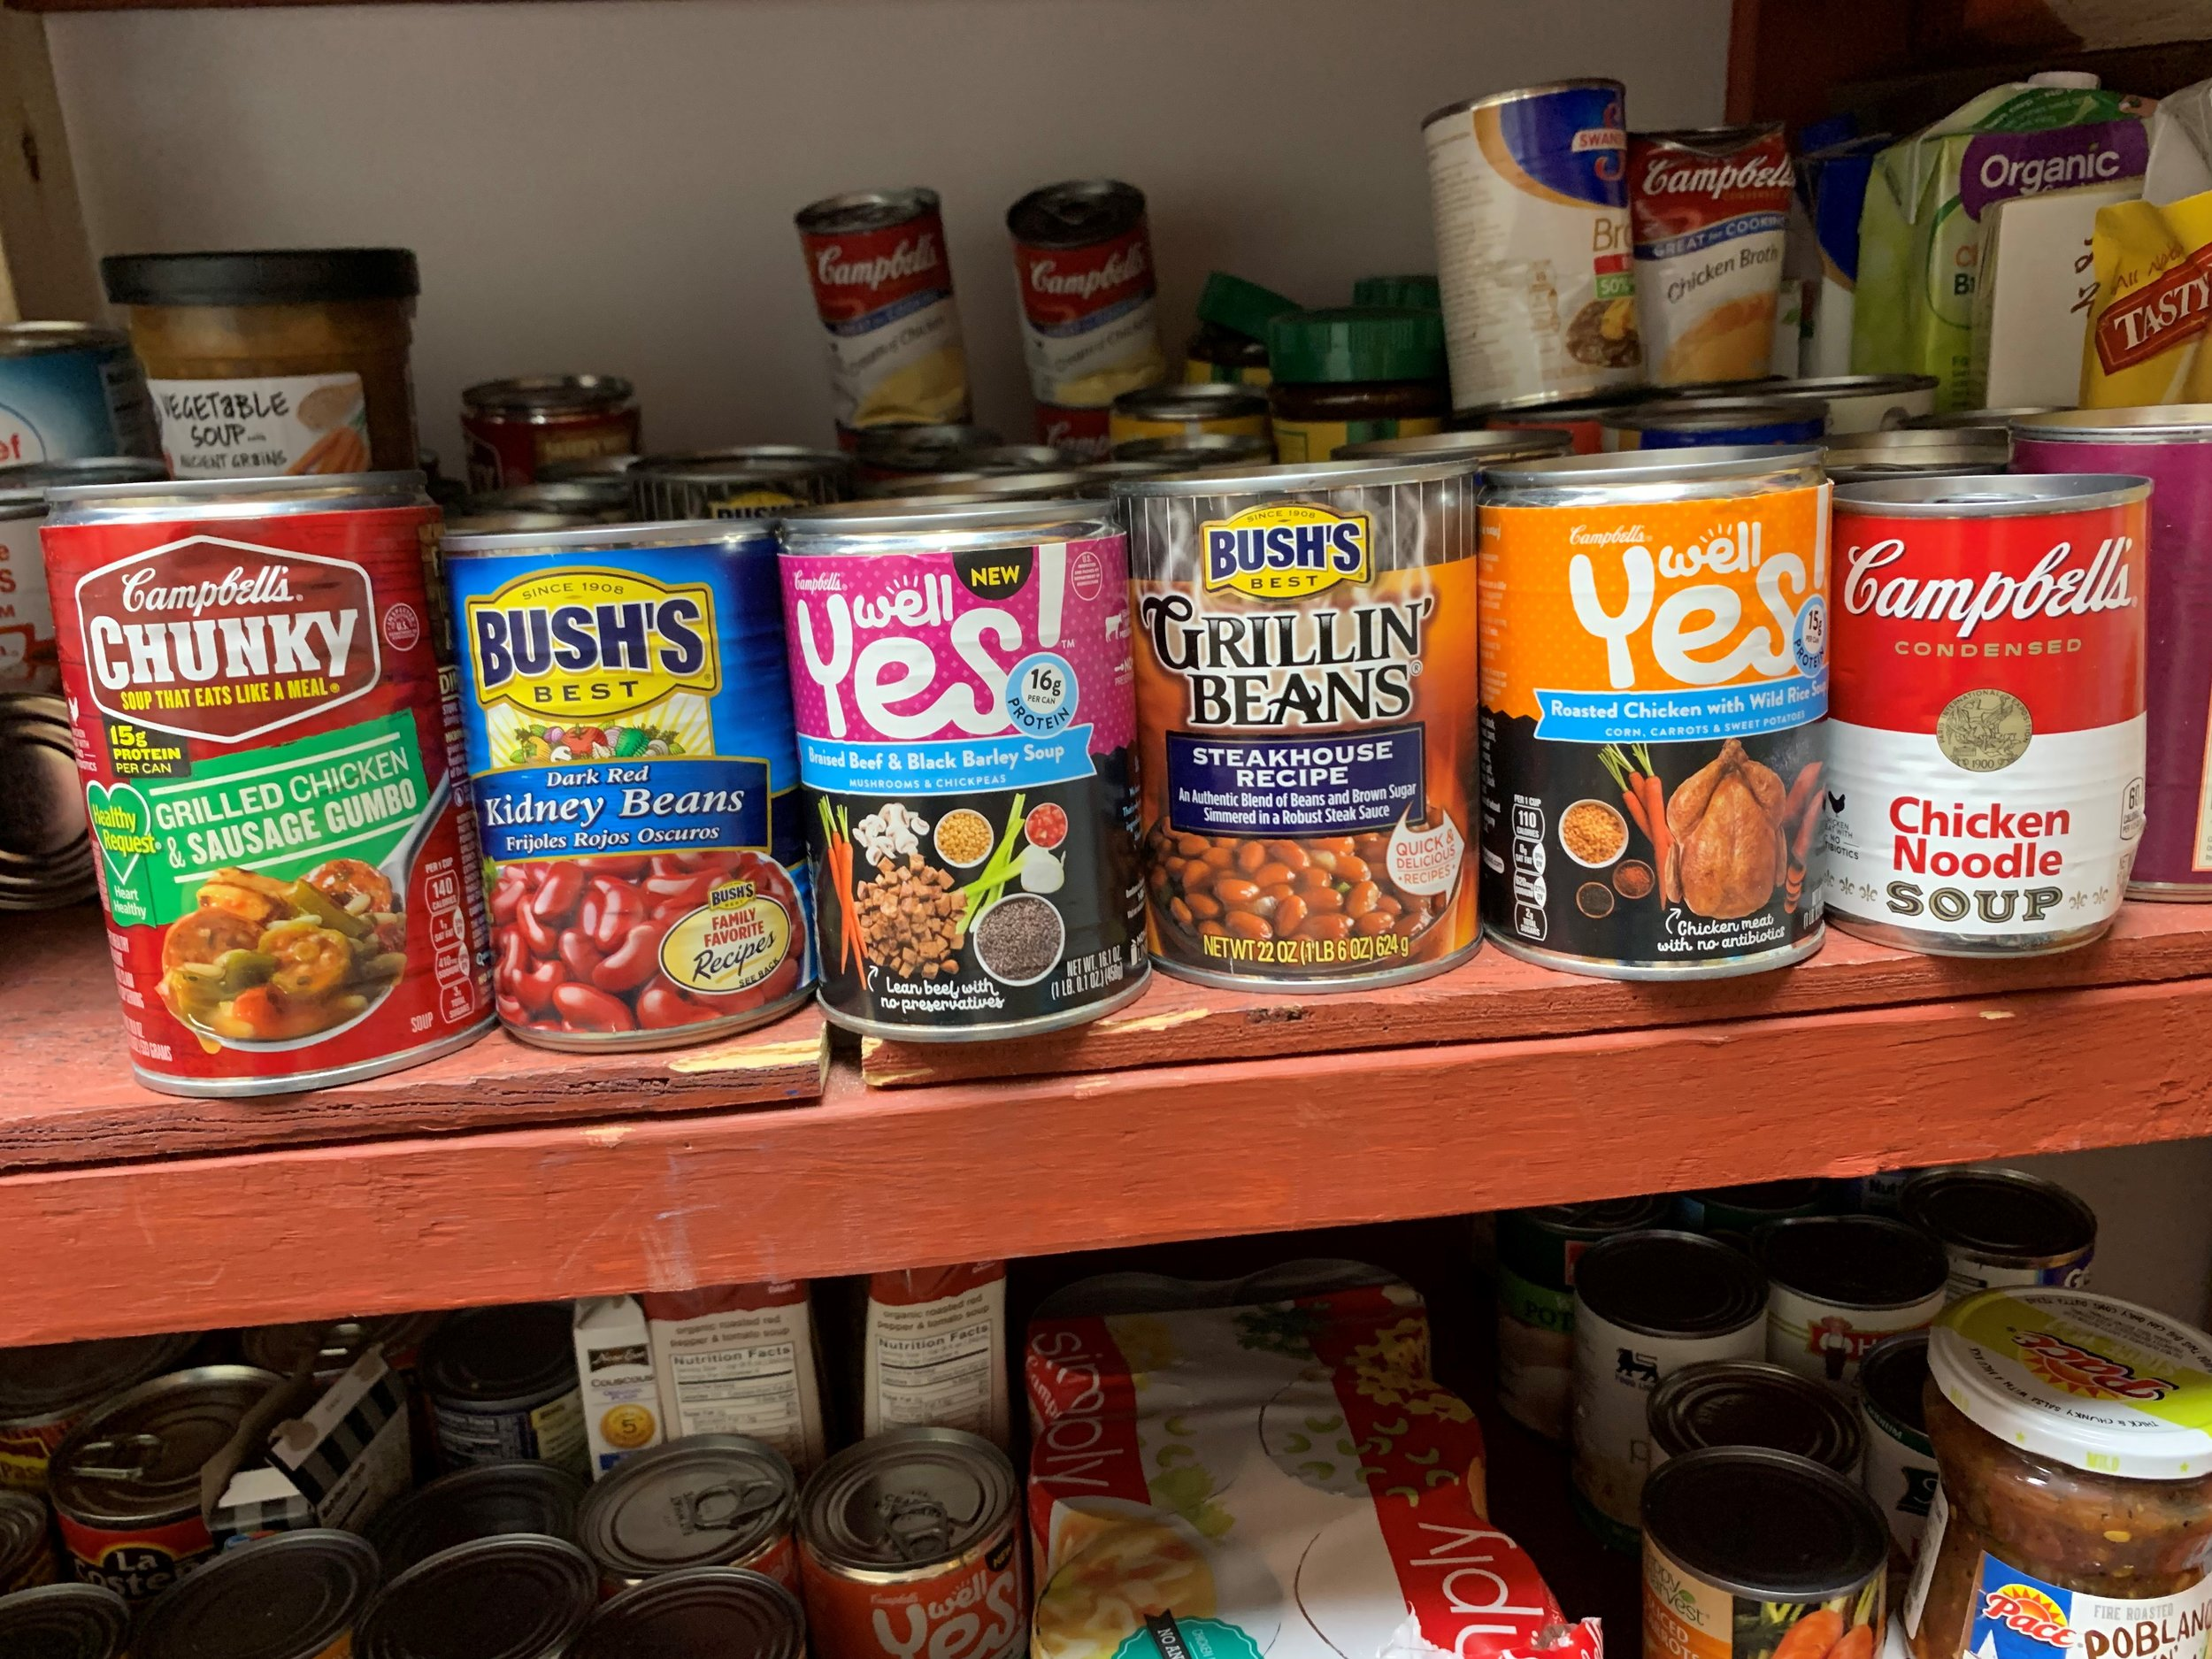 Urgent Needs Drive - The Women's Center serves 25-25 women per day who come through our door seeking food, hygiene items and other critically needed items. Your corporate group, civic group, church or family group can host a drive to collect items that The Women's Center urgently needs at this time. Click on the button below to view our most current Urgent Needs list and get details about how and where to deliver them!